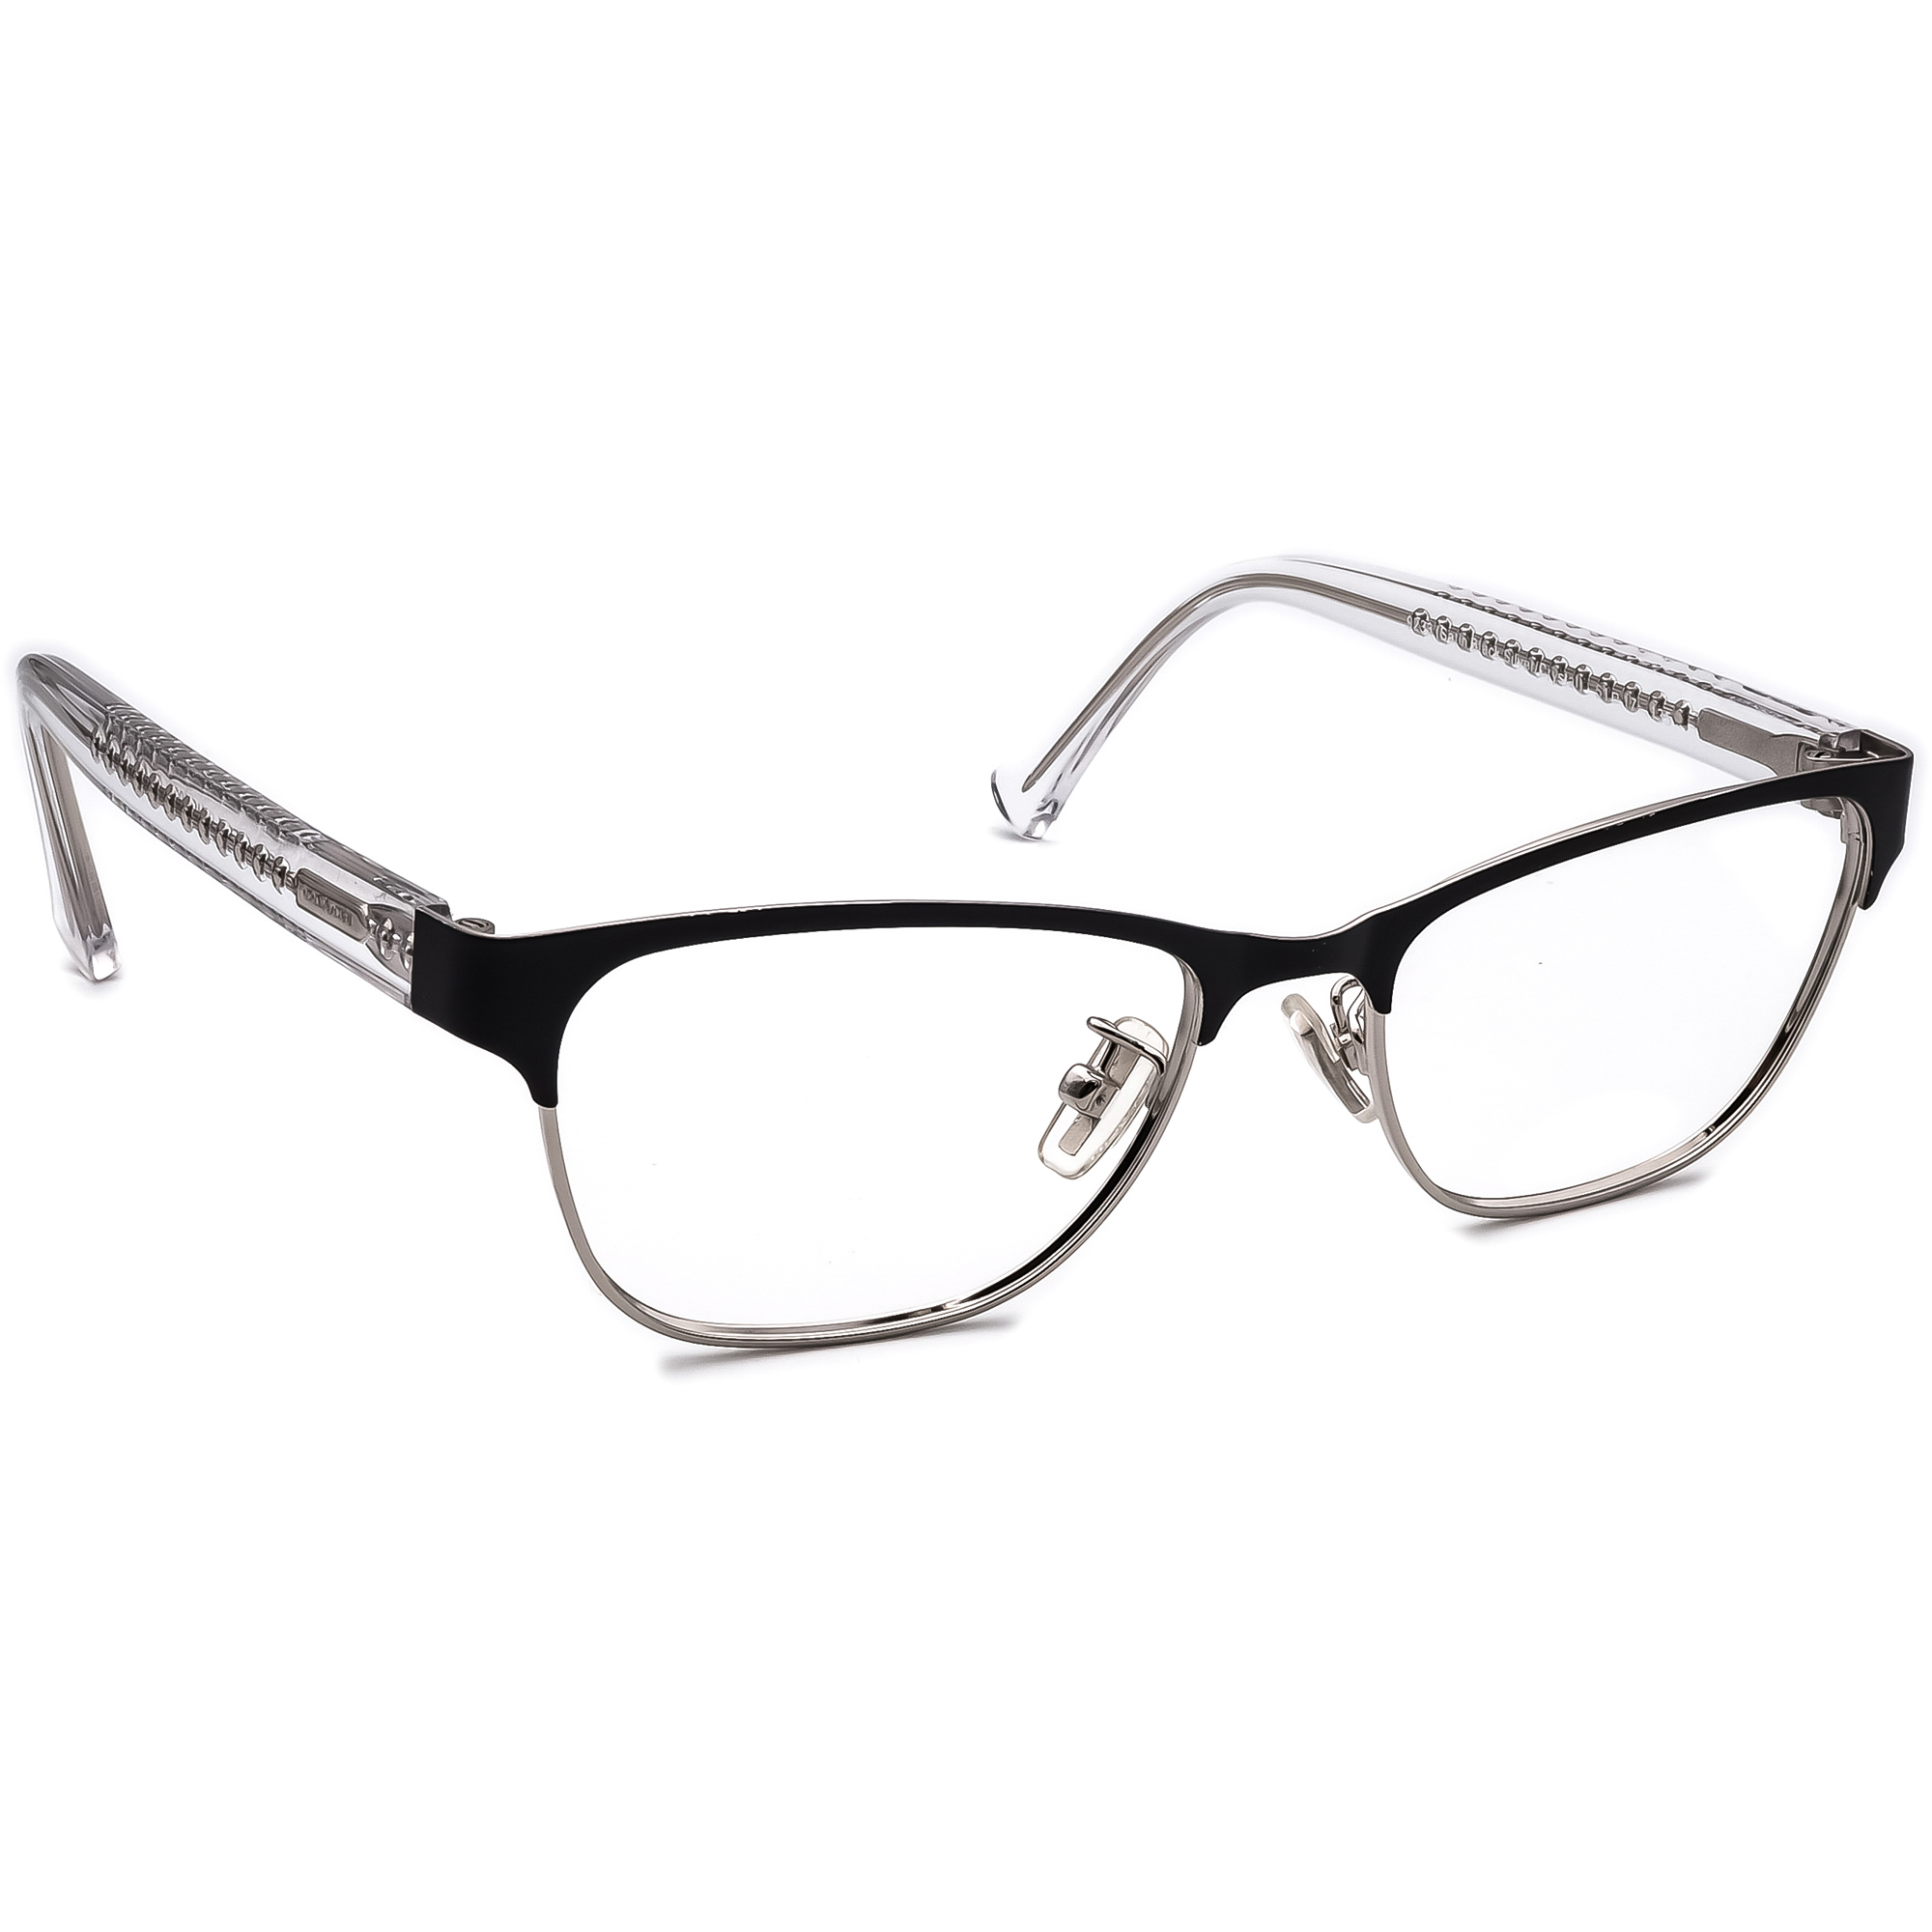 Coach HC 5067 9233 Eyeglasses